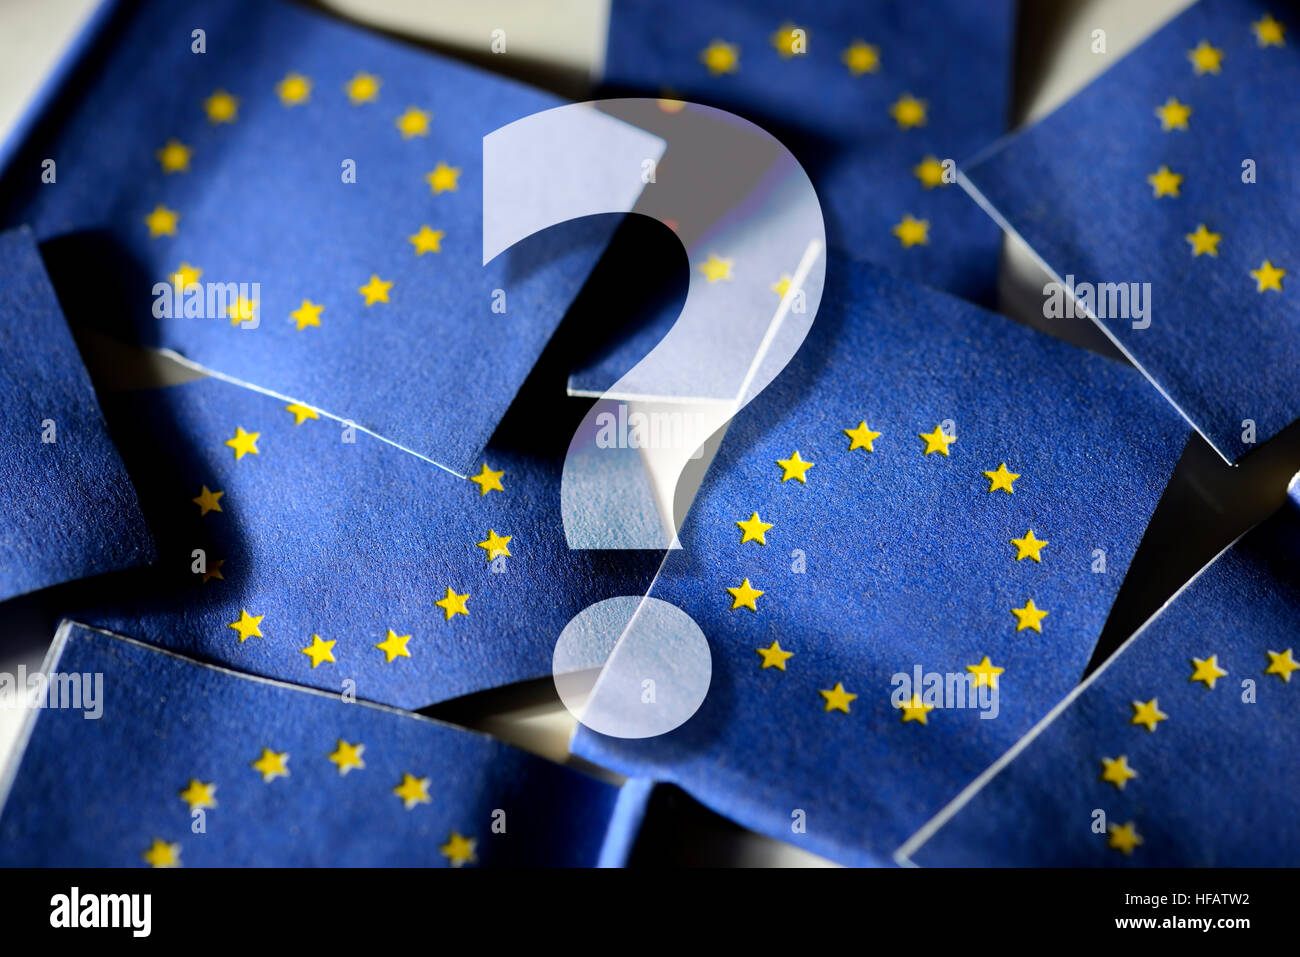 Question mark in front of flags of the European Union - Stock Image